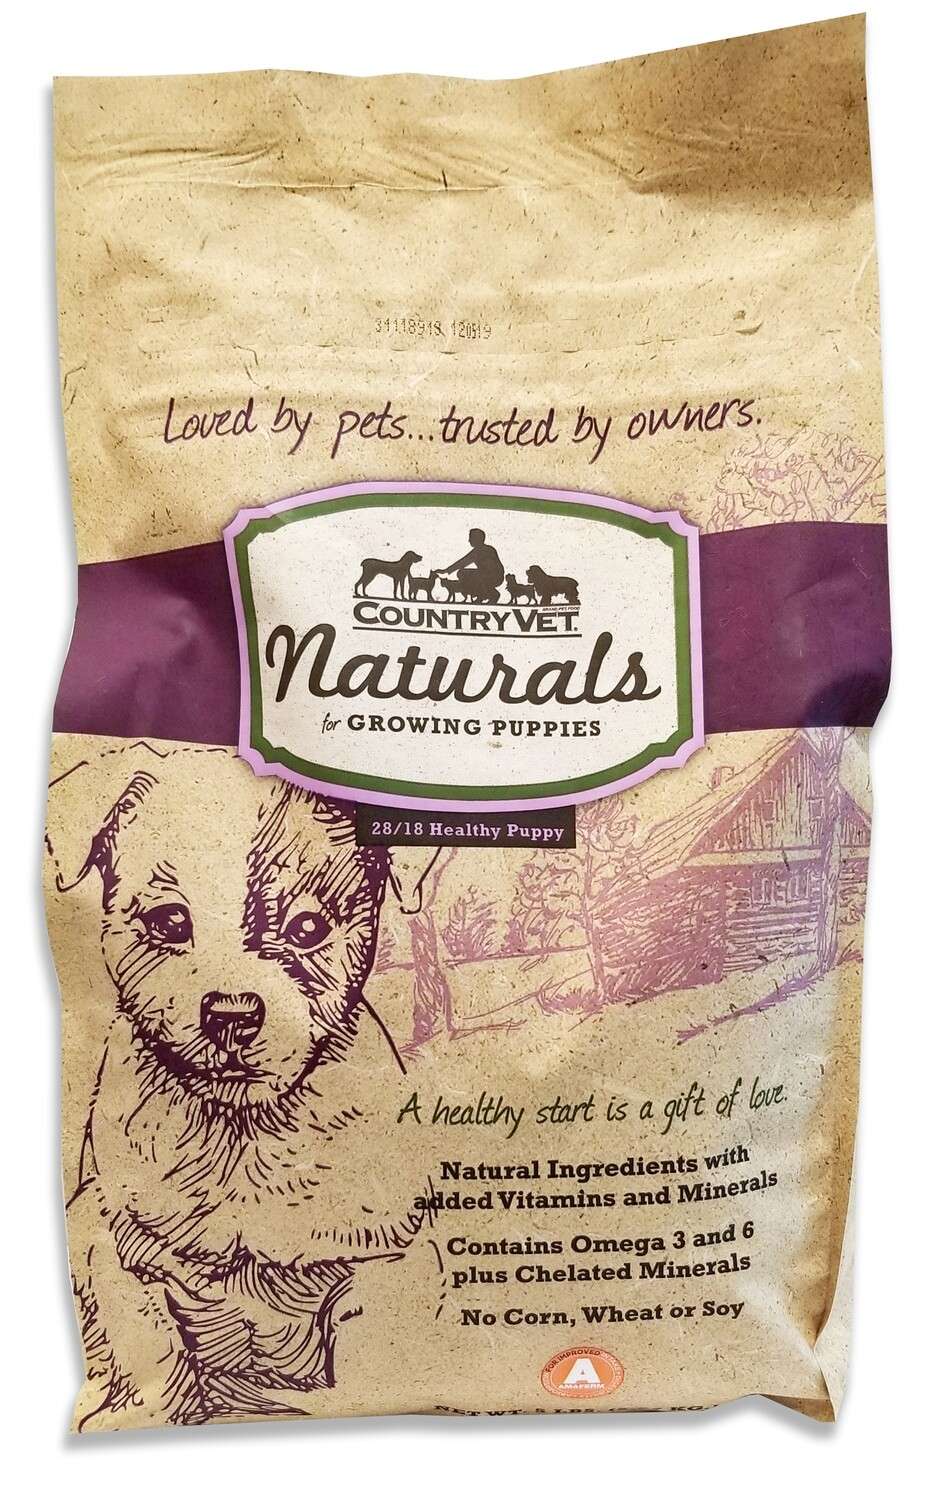 Country Vet® Naturals Dog Food